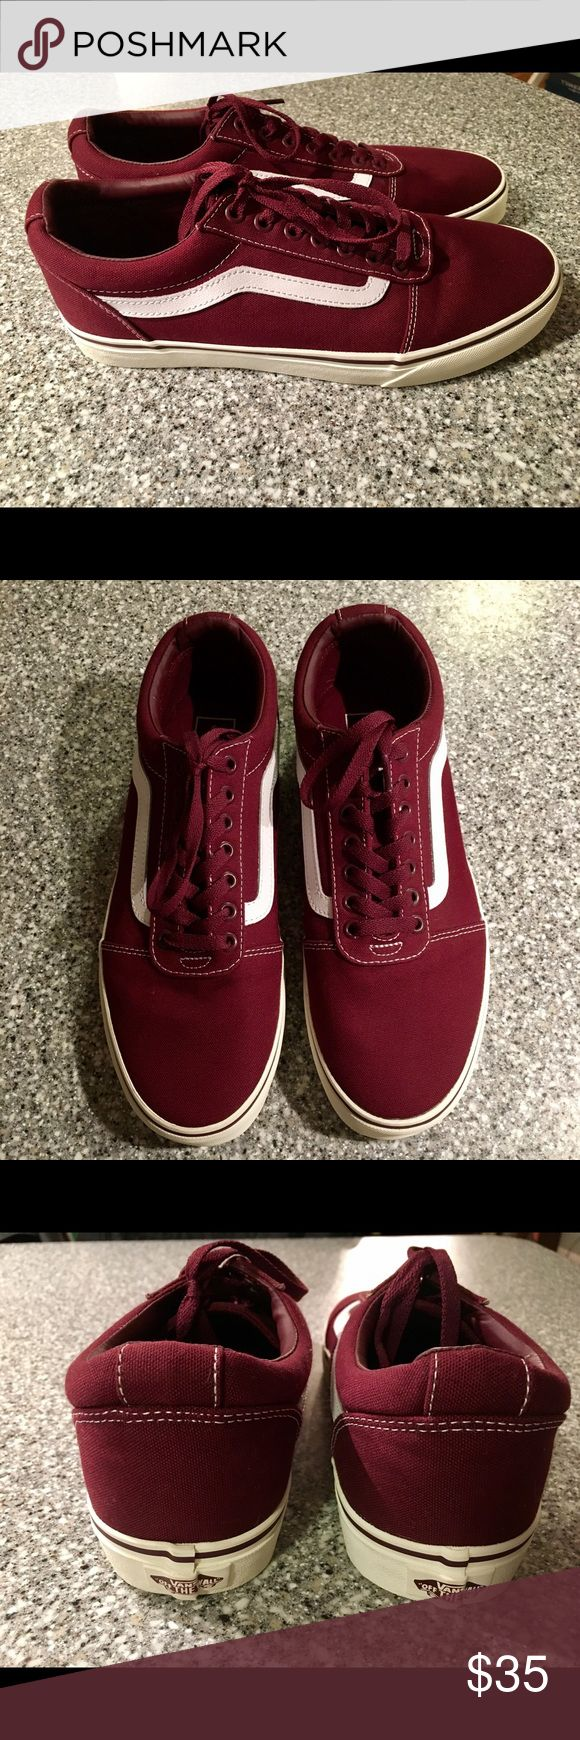 Brand new pair of Old Skool Vans Brand new pair of Old Skool Vans (NWOT). Size men's 9.5. Color is burgundy/maroon. I bought these for my son and he outgrew them before he even had a chance to wear them! They've never seen pavement.   Classic Vans skate shoe with iconic side stripe. Durable canvas upper with padded tongue and lining. Vans Shoes Athletic Shoes